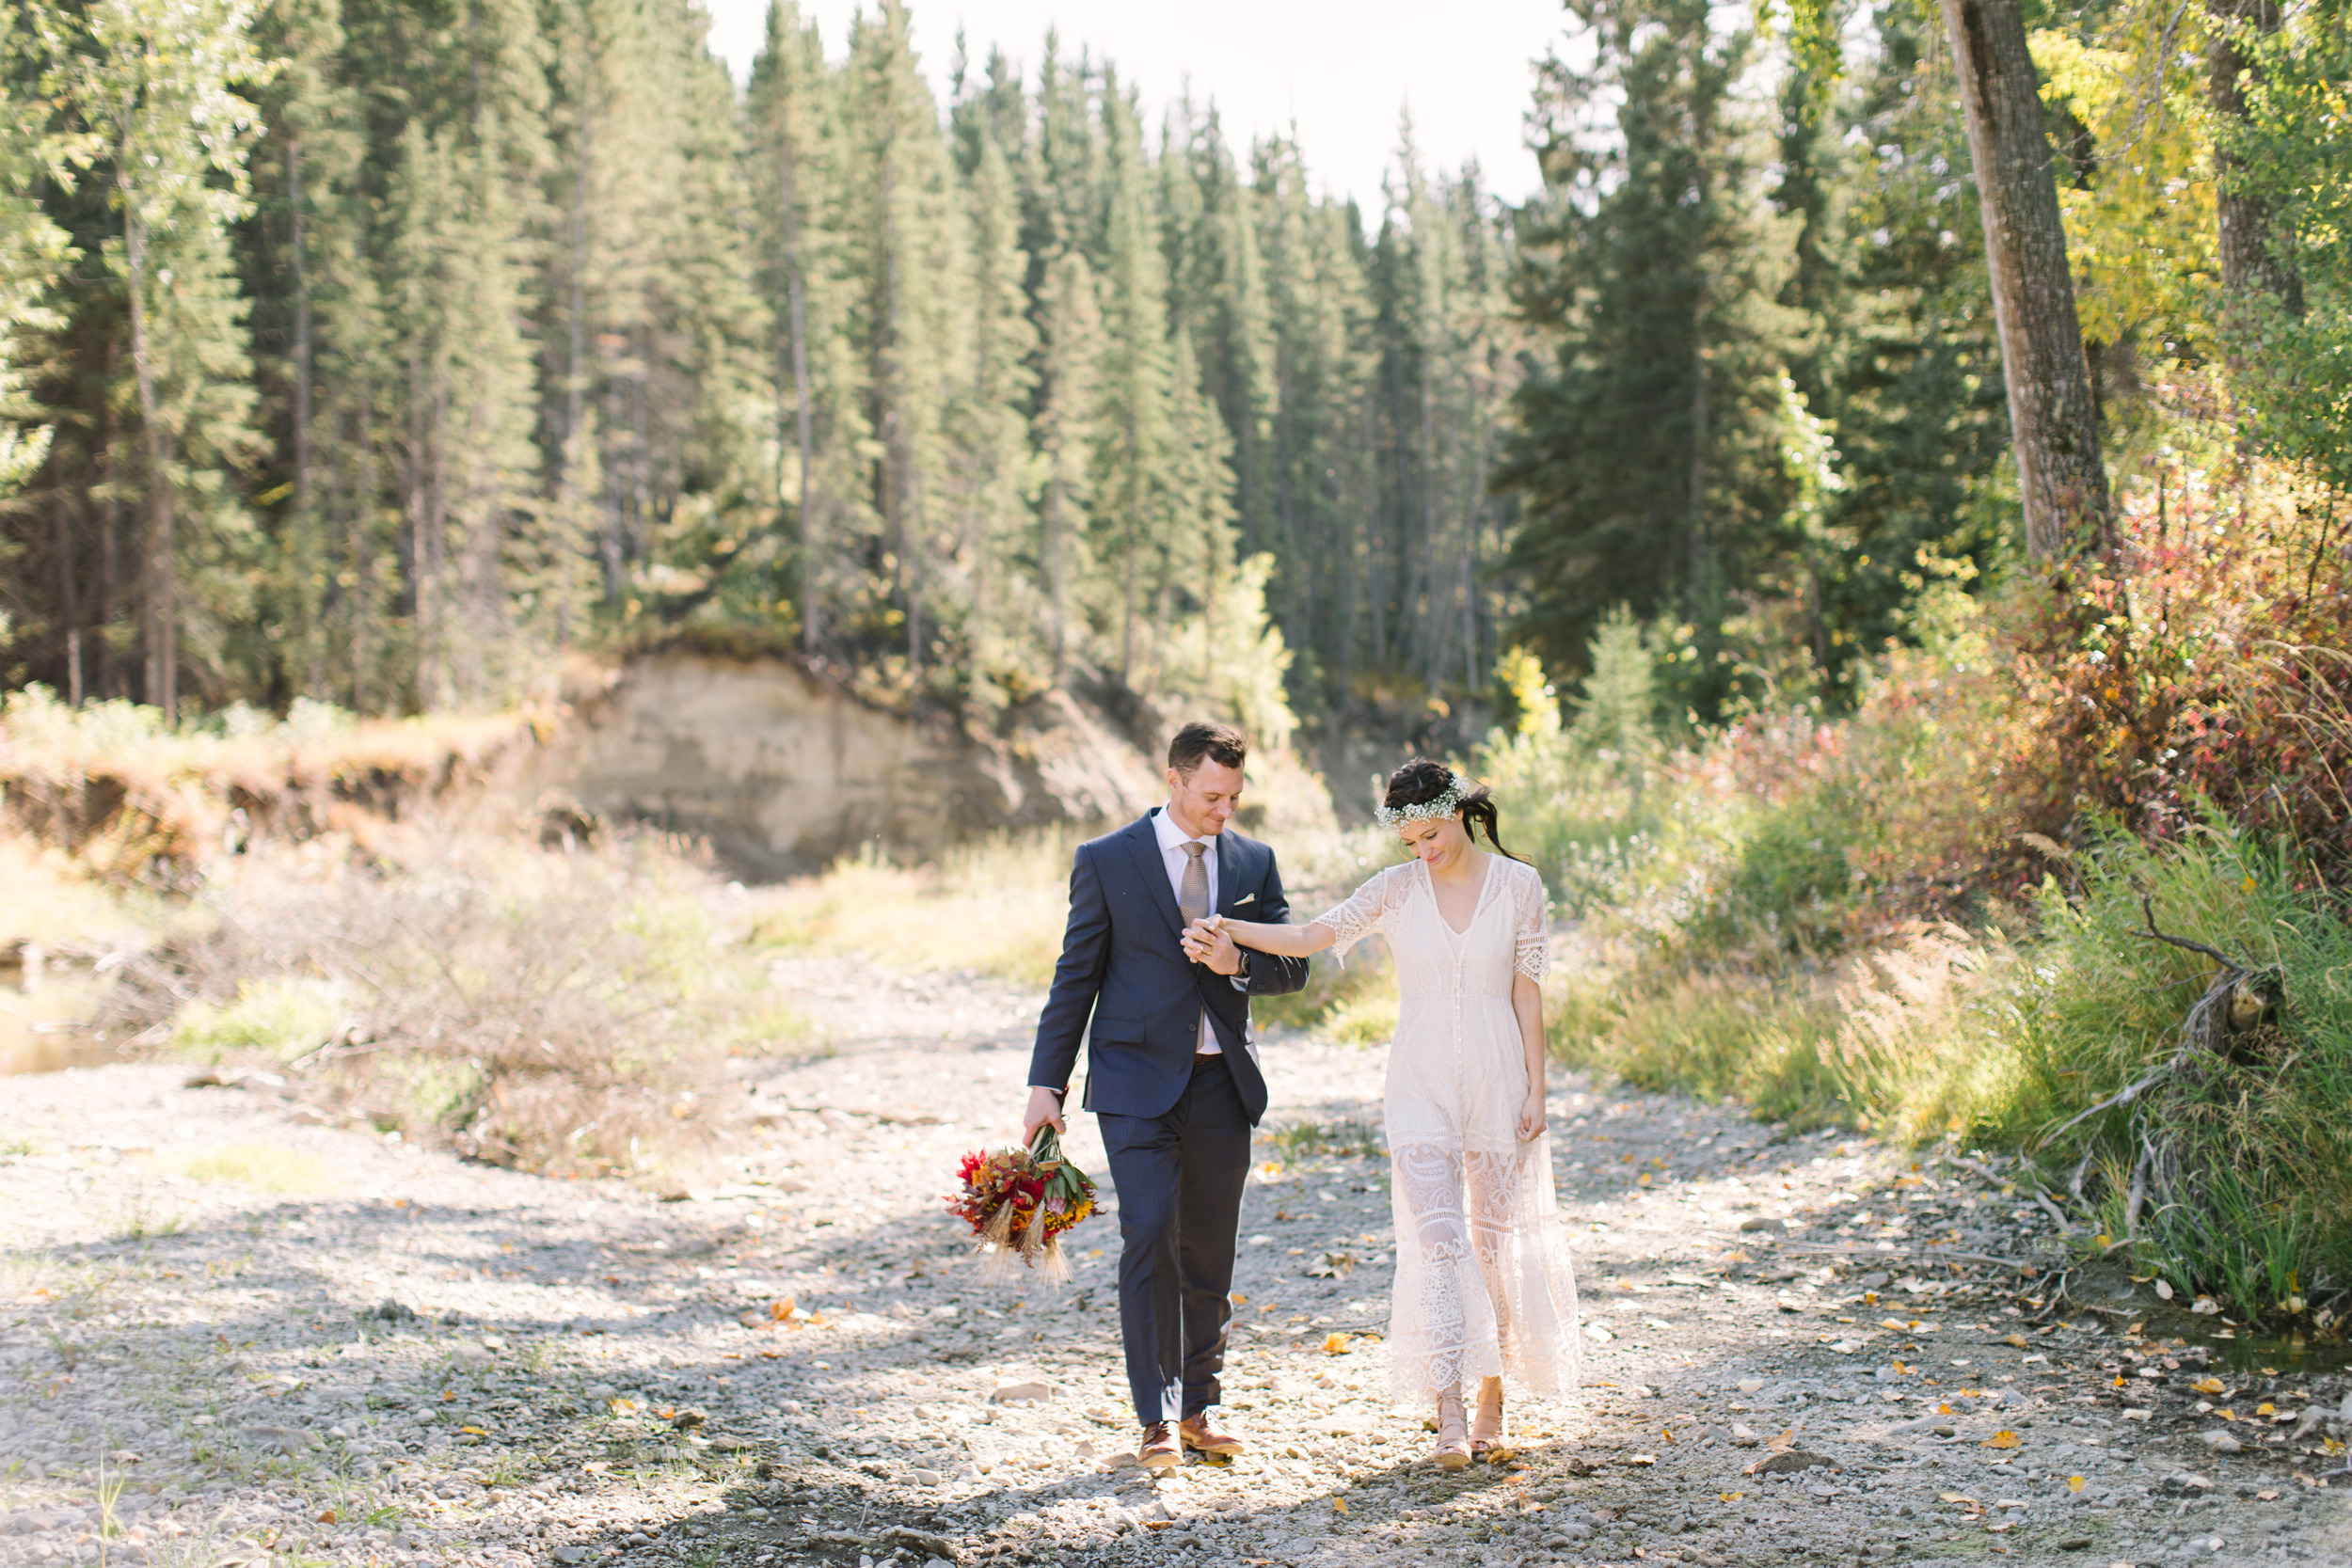 Calgary_Intimate_Backyard_Wedding0024.jpg